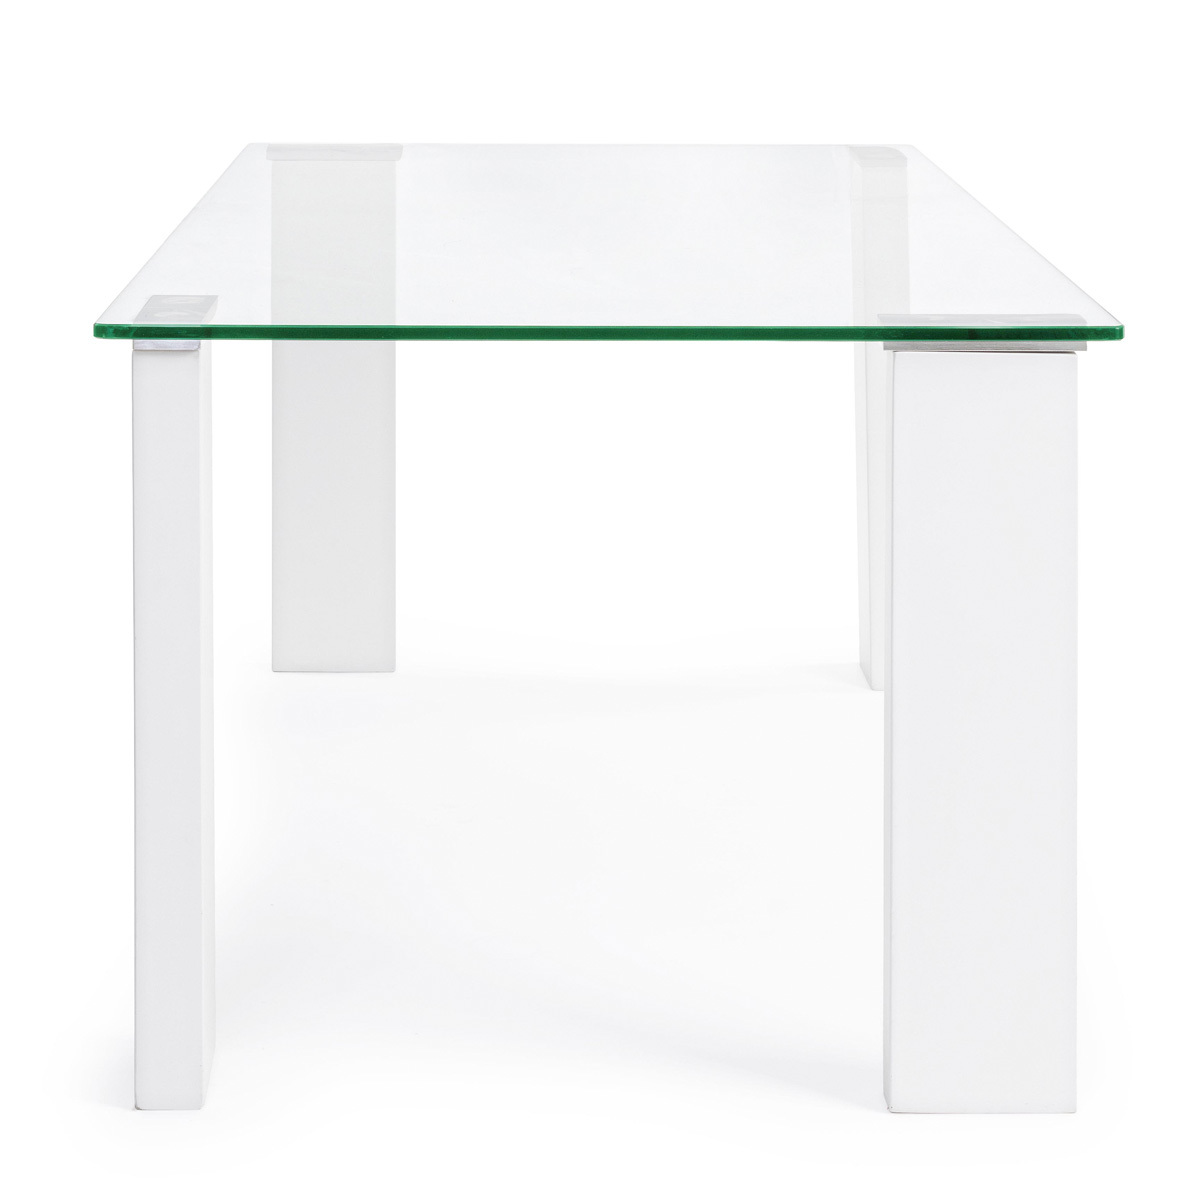 Photos 3: Bizzotto Rectangular table in glass l. 120 x 60 0731963